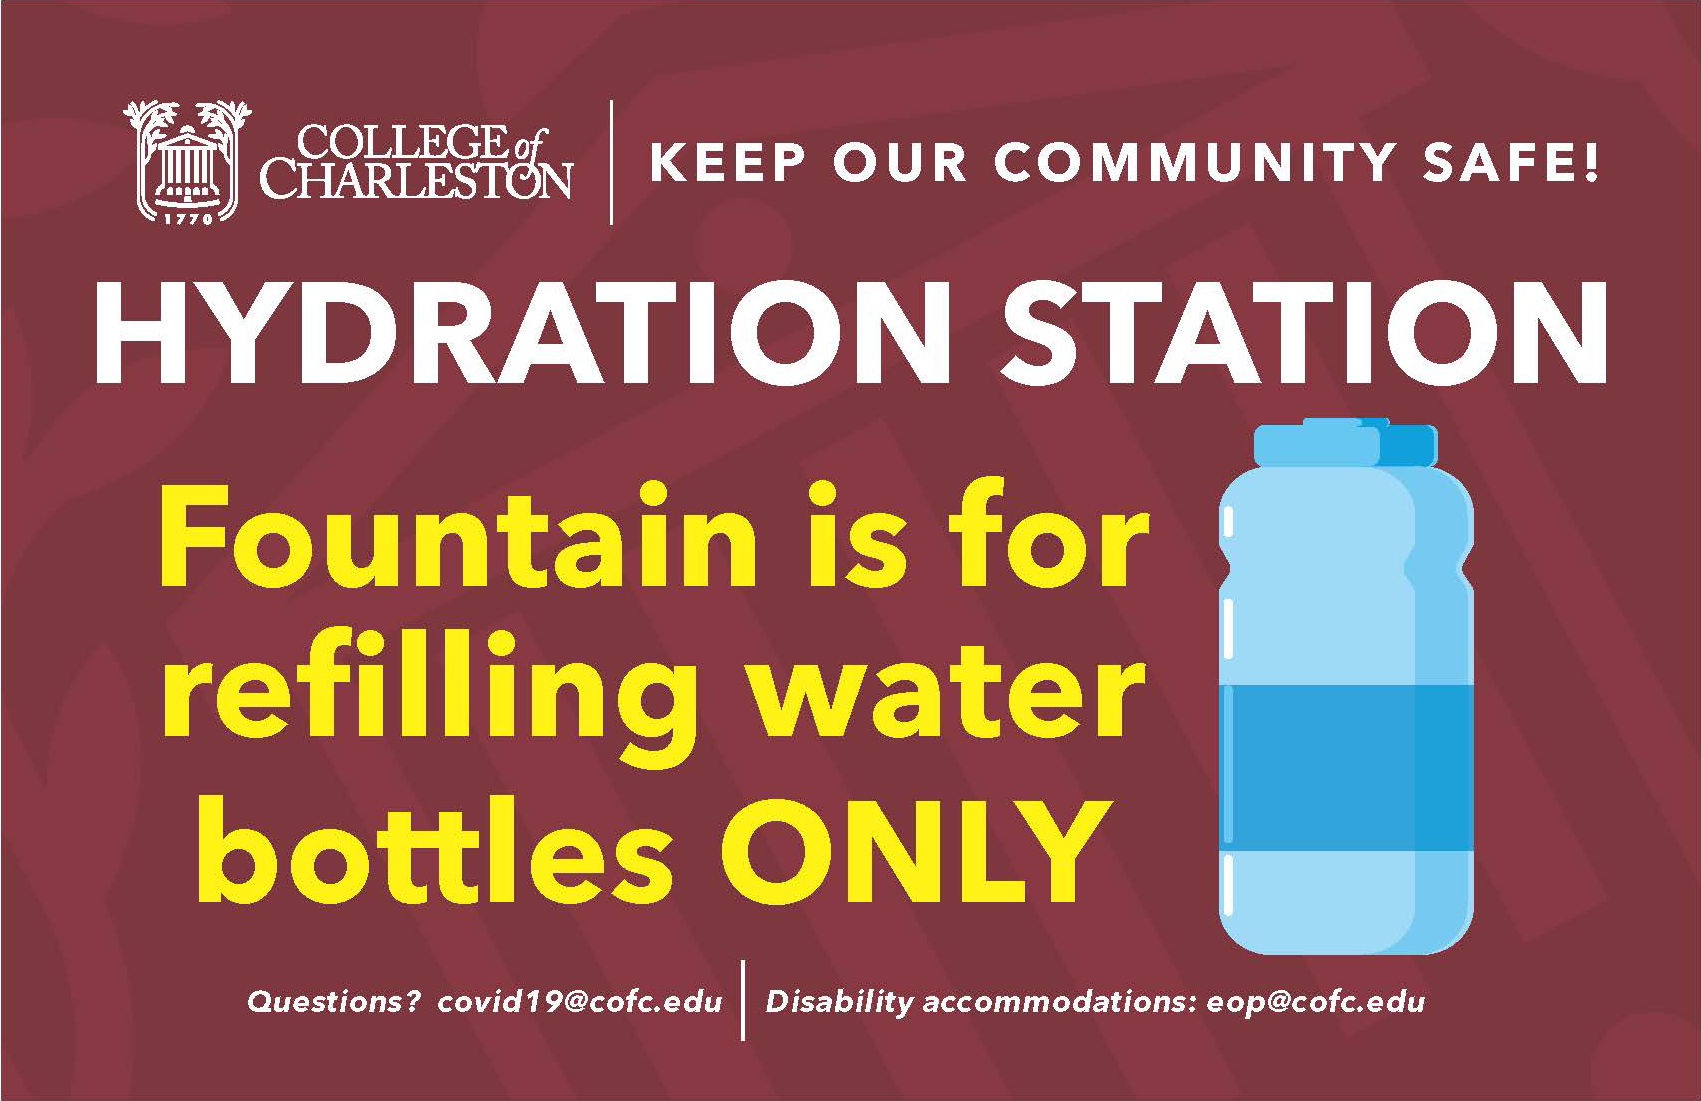 image of signage for hydration station